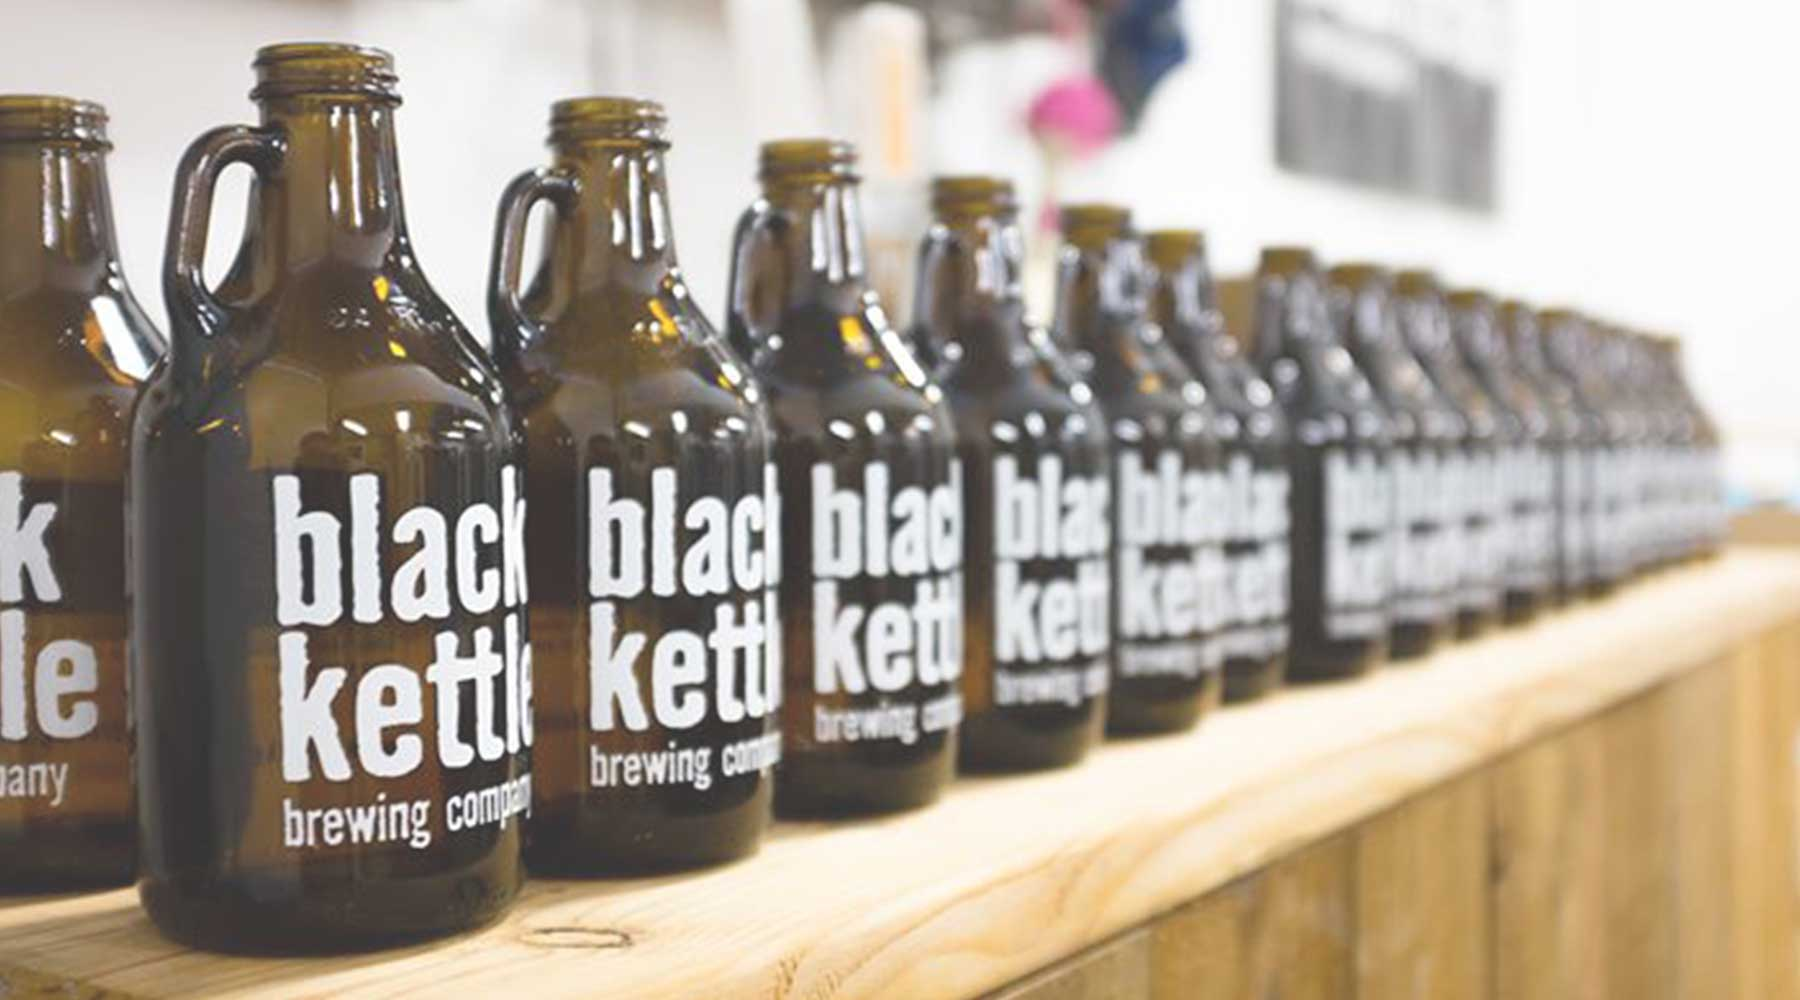 Black Kettle Brewing Company | Just Wine